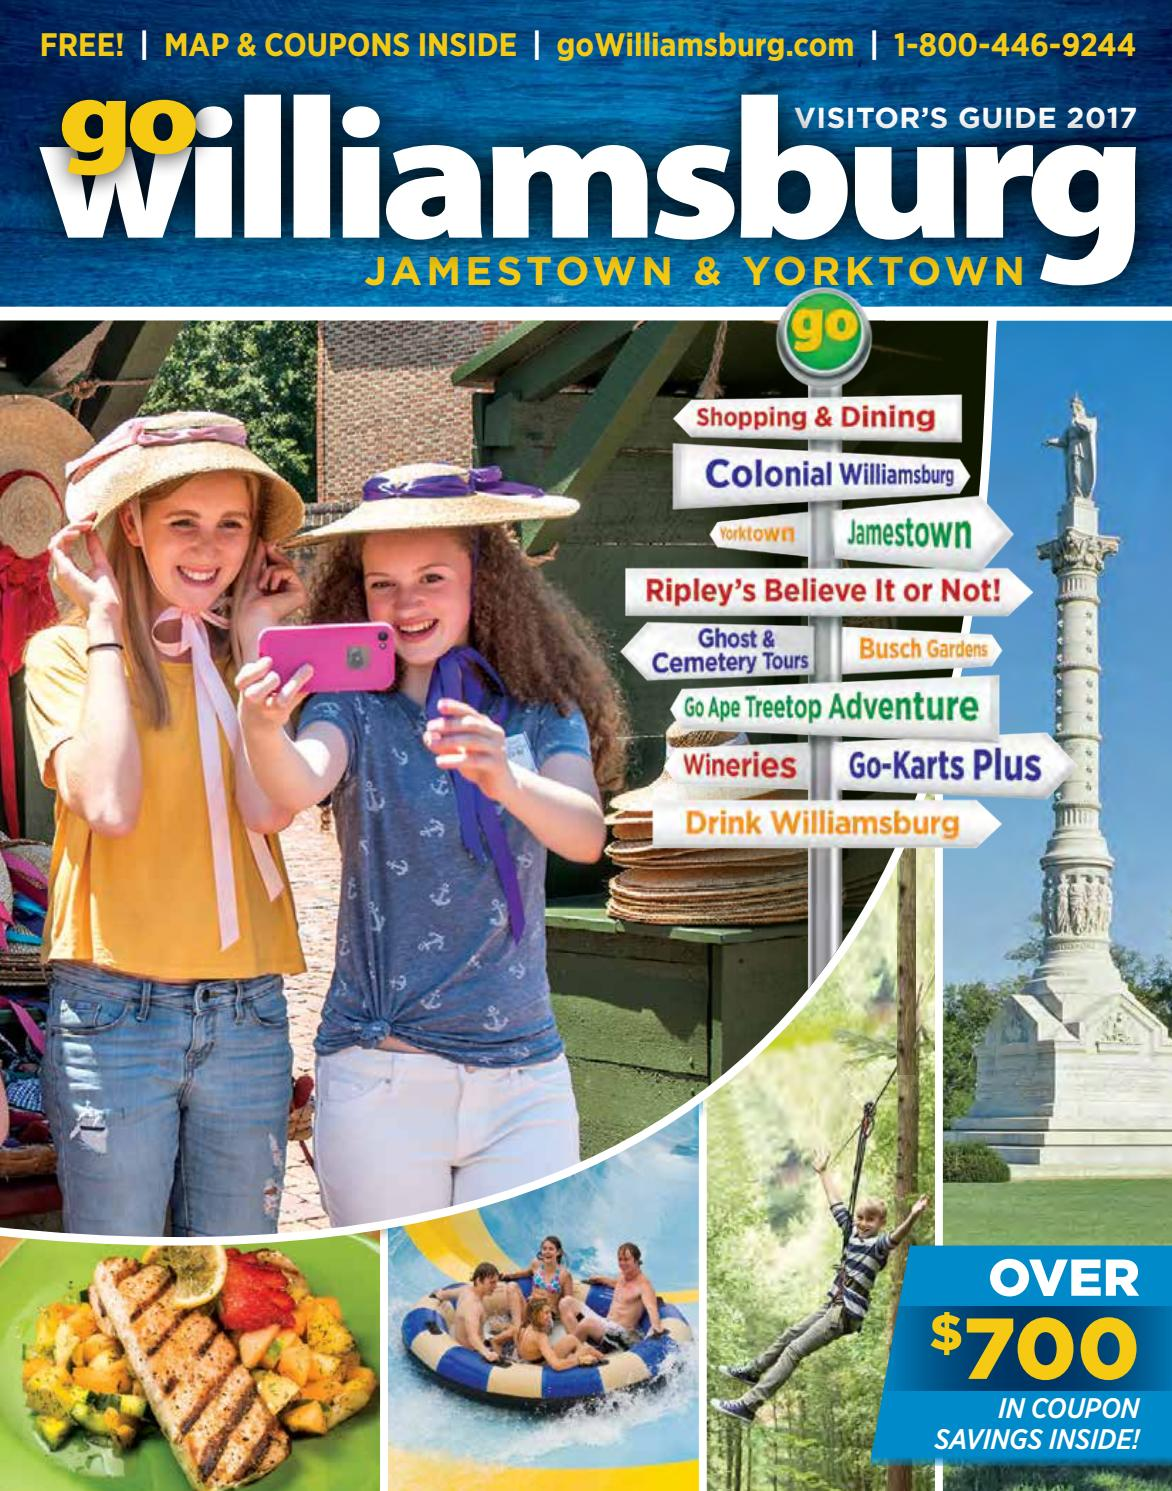 6339 old york road - Gowilliamsburg Jamestown Yorktown Visitor S Guide 2017 By Vistagraphics Issuu